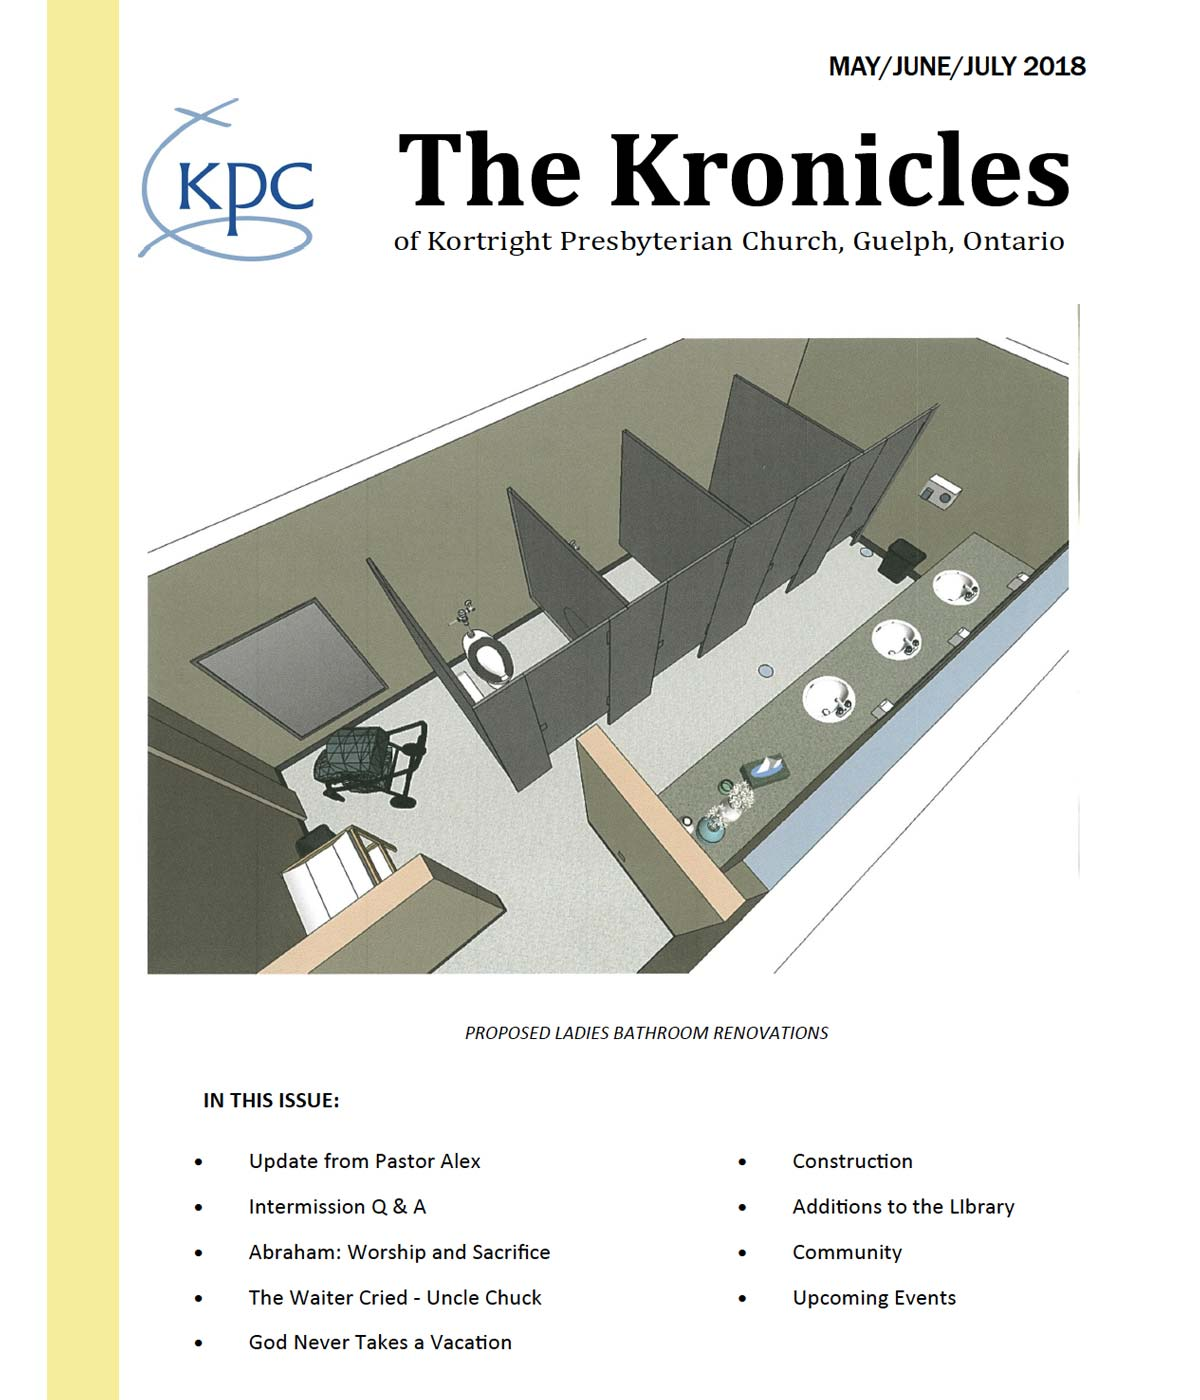 image of the front page of the Kortright Kronicles from May, June and July 2018